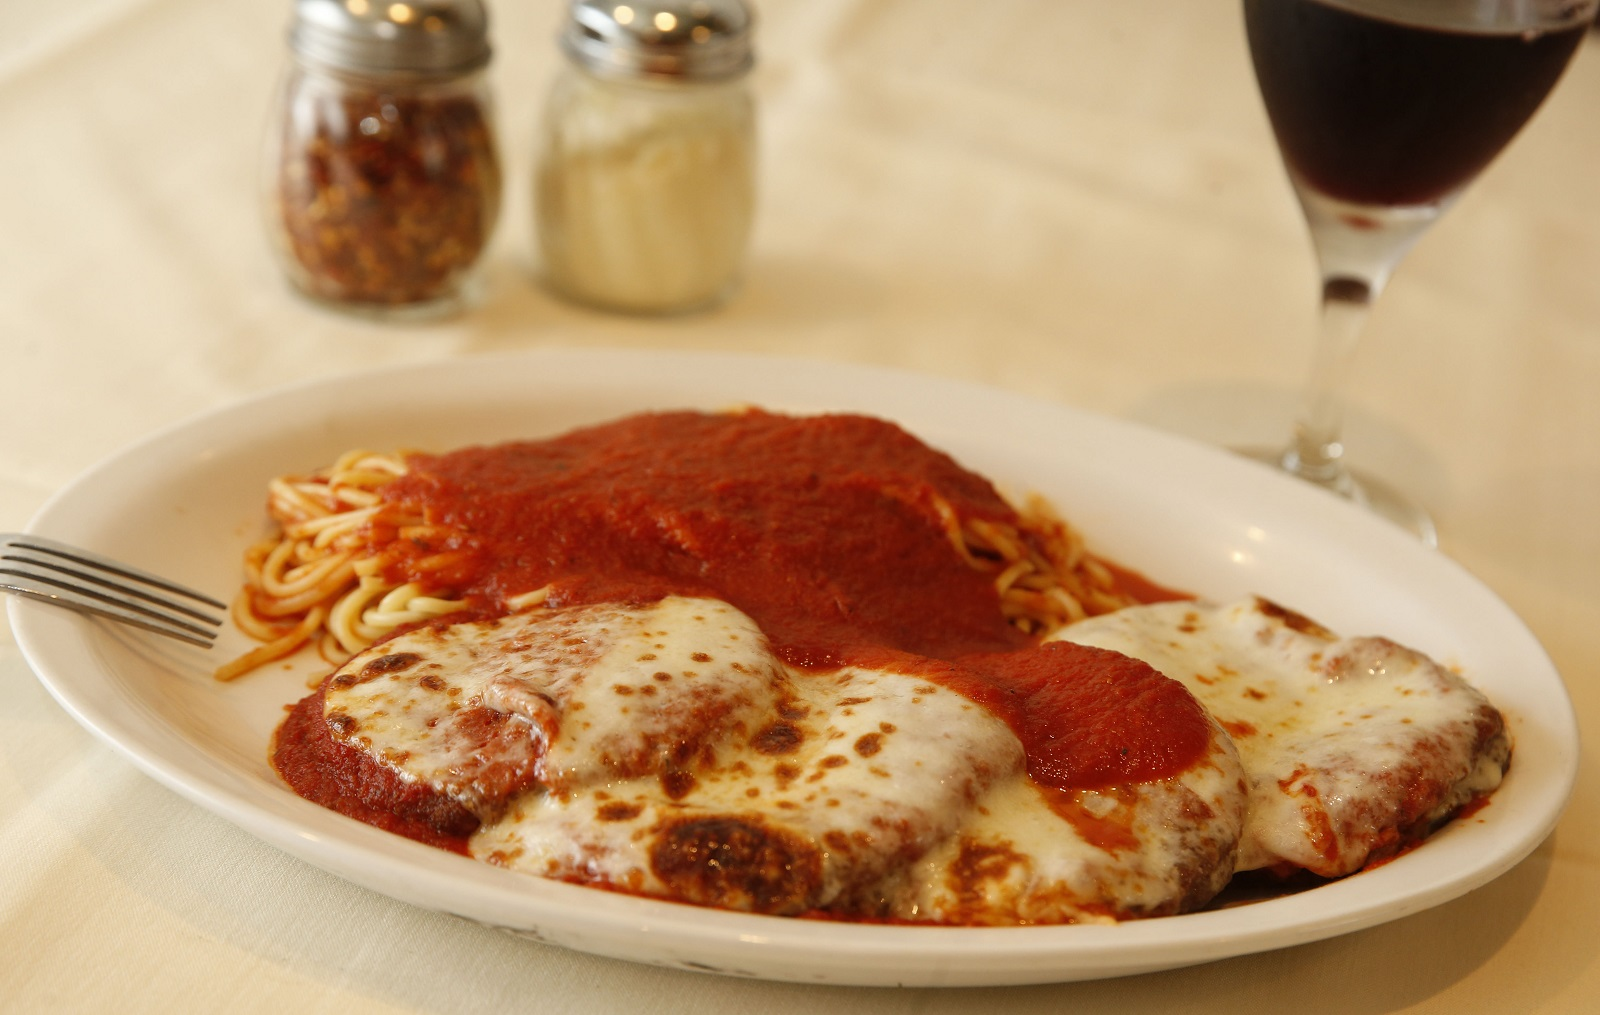 The lasagna is layers of pasta filled with ricotta cheese and meat filling. (Sharon Cantillon/Buffalo News)